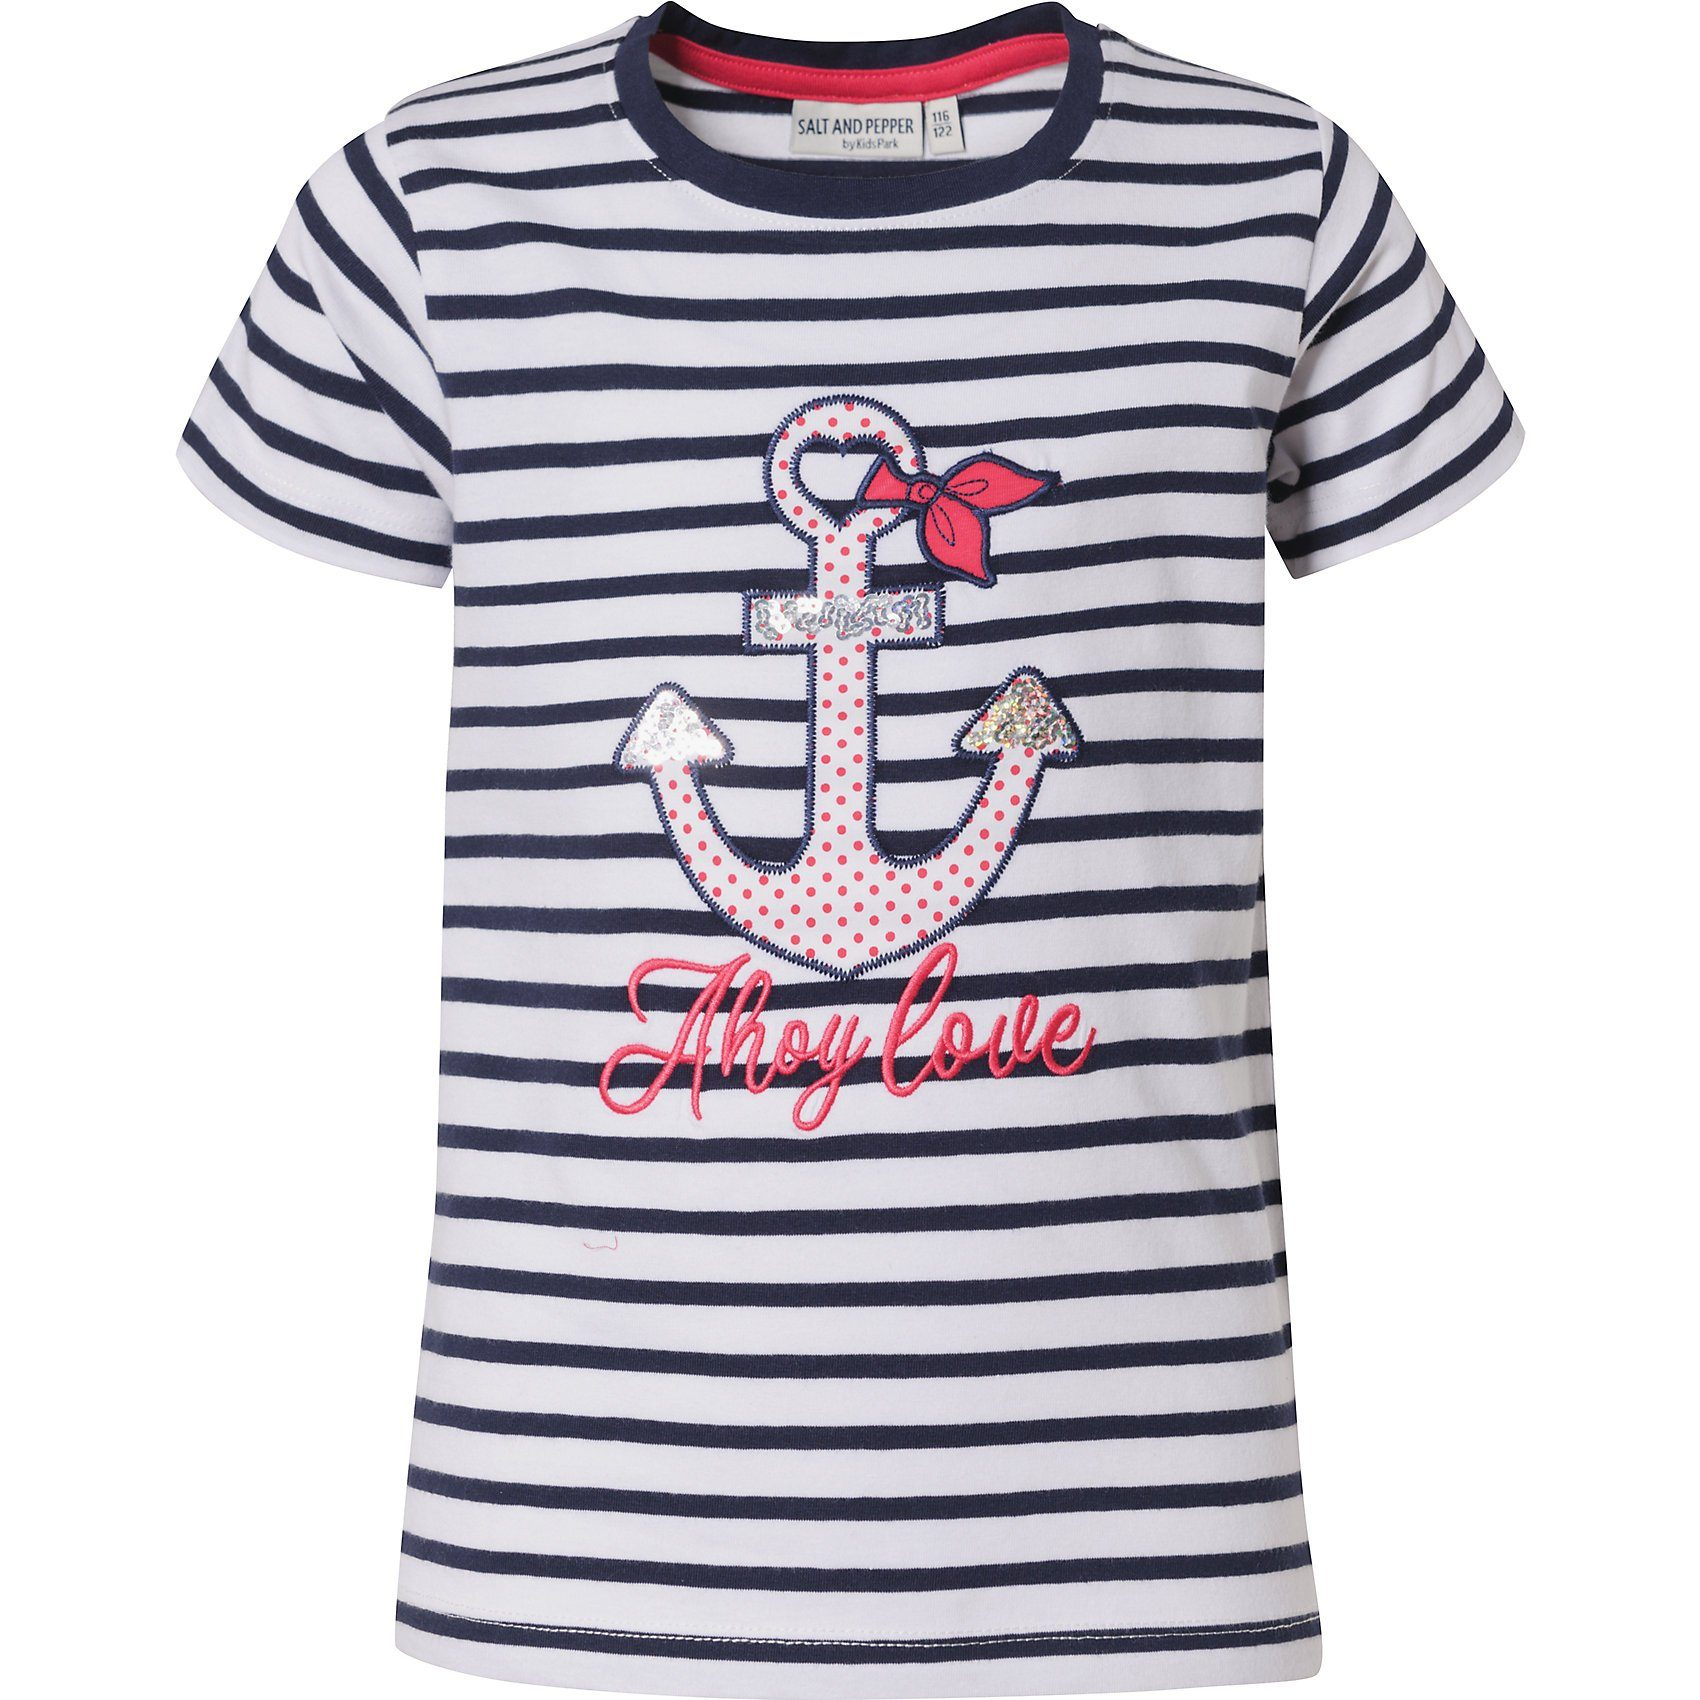 SALT AND PEPPER Baby-M/ädchen B Wild Stripe Love T-Shirt